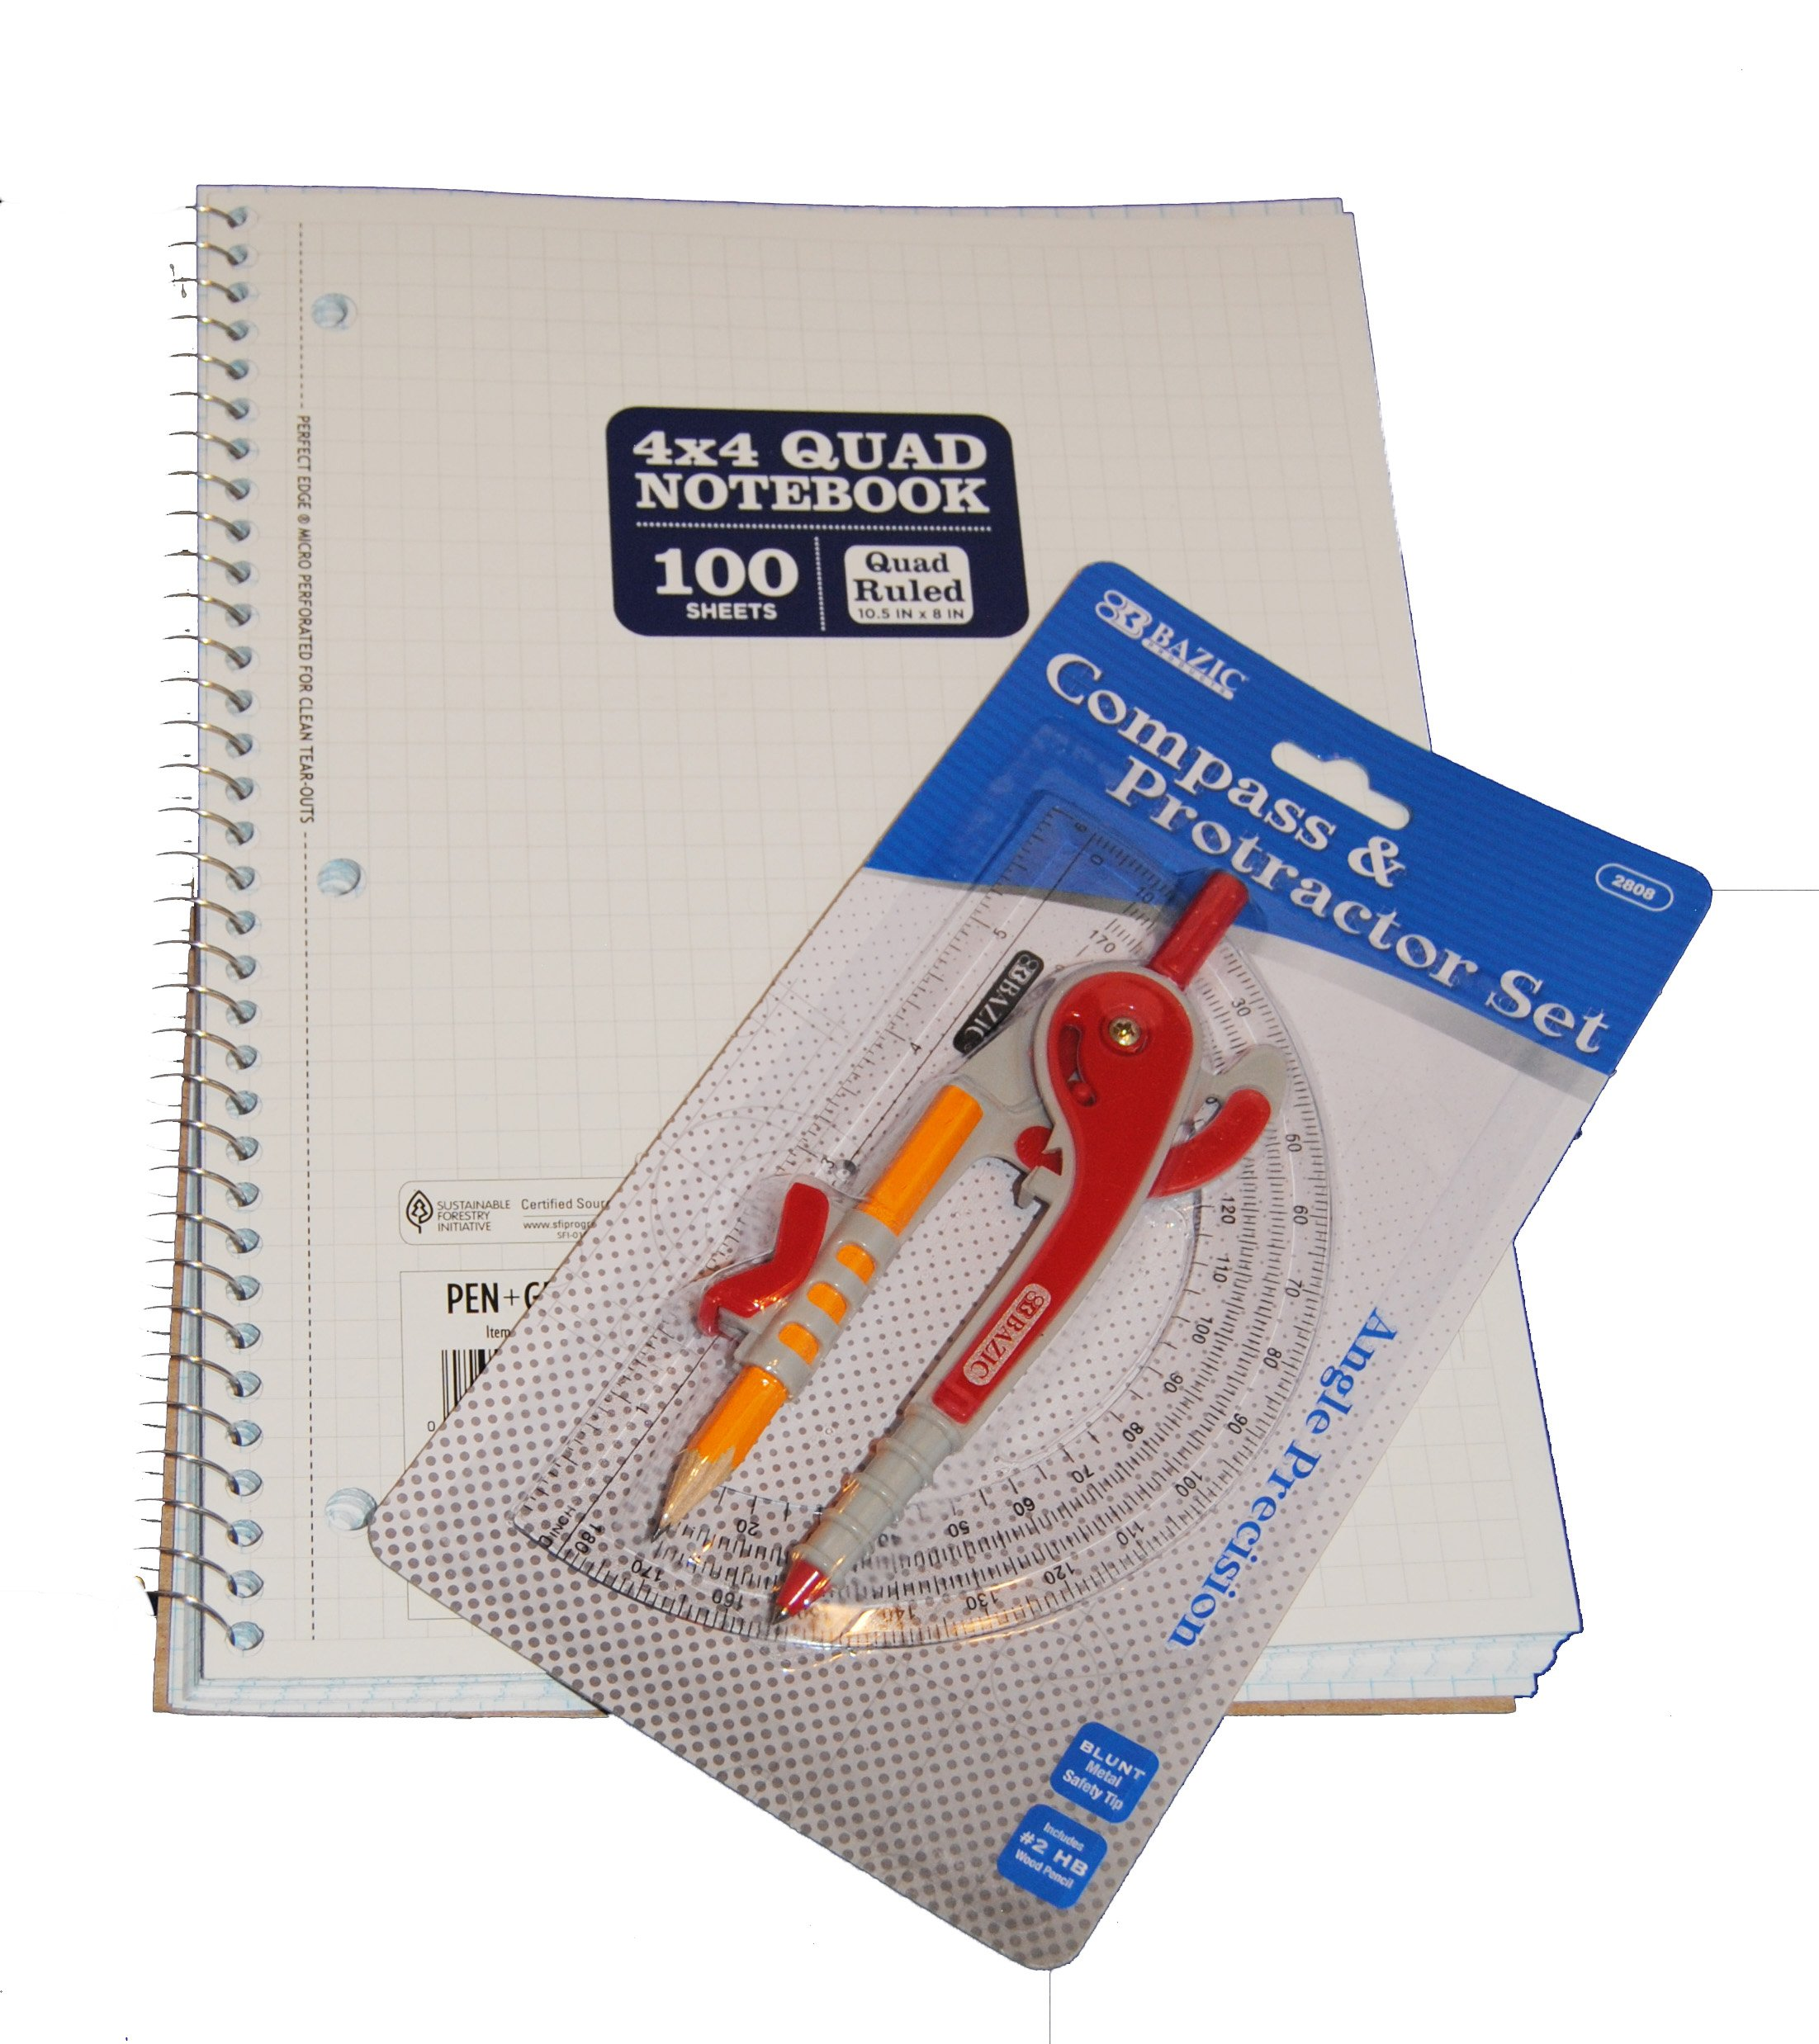 Spiral Bound 4x4 Graph Paper with Compass and Protractor Set for Geometry